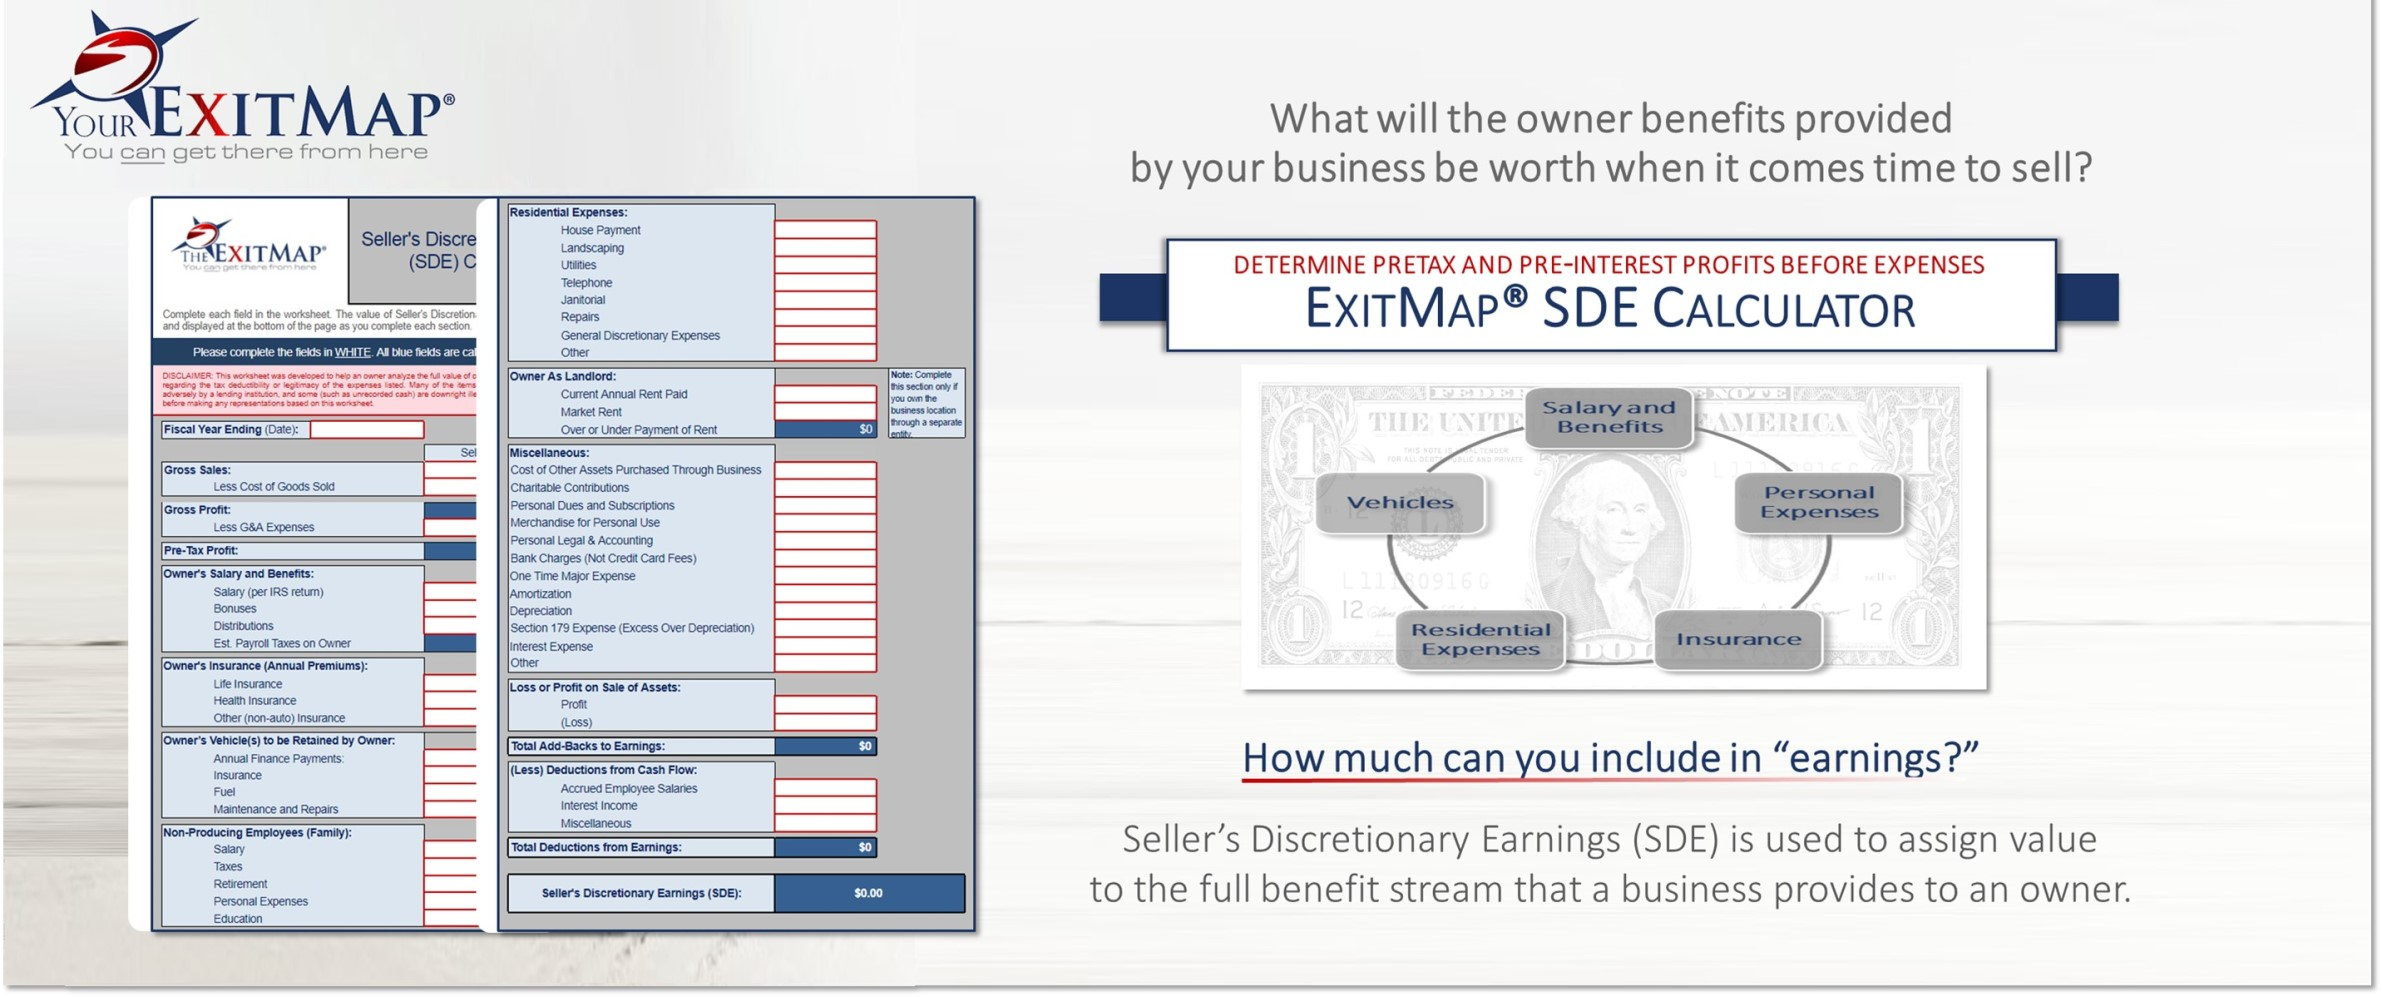 free exit planning tools for business owners your exitmap. Black Bedroom Furniture Sets. Home Design Ideas